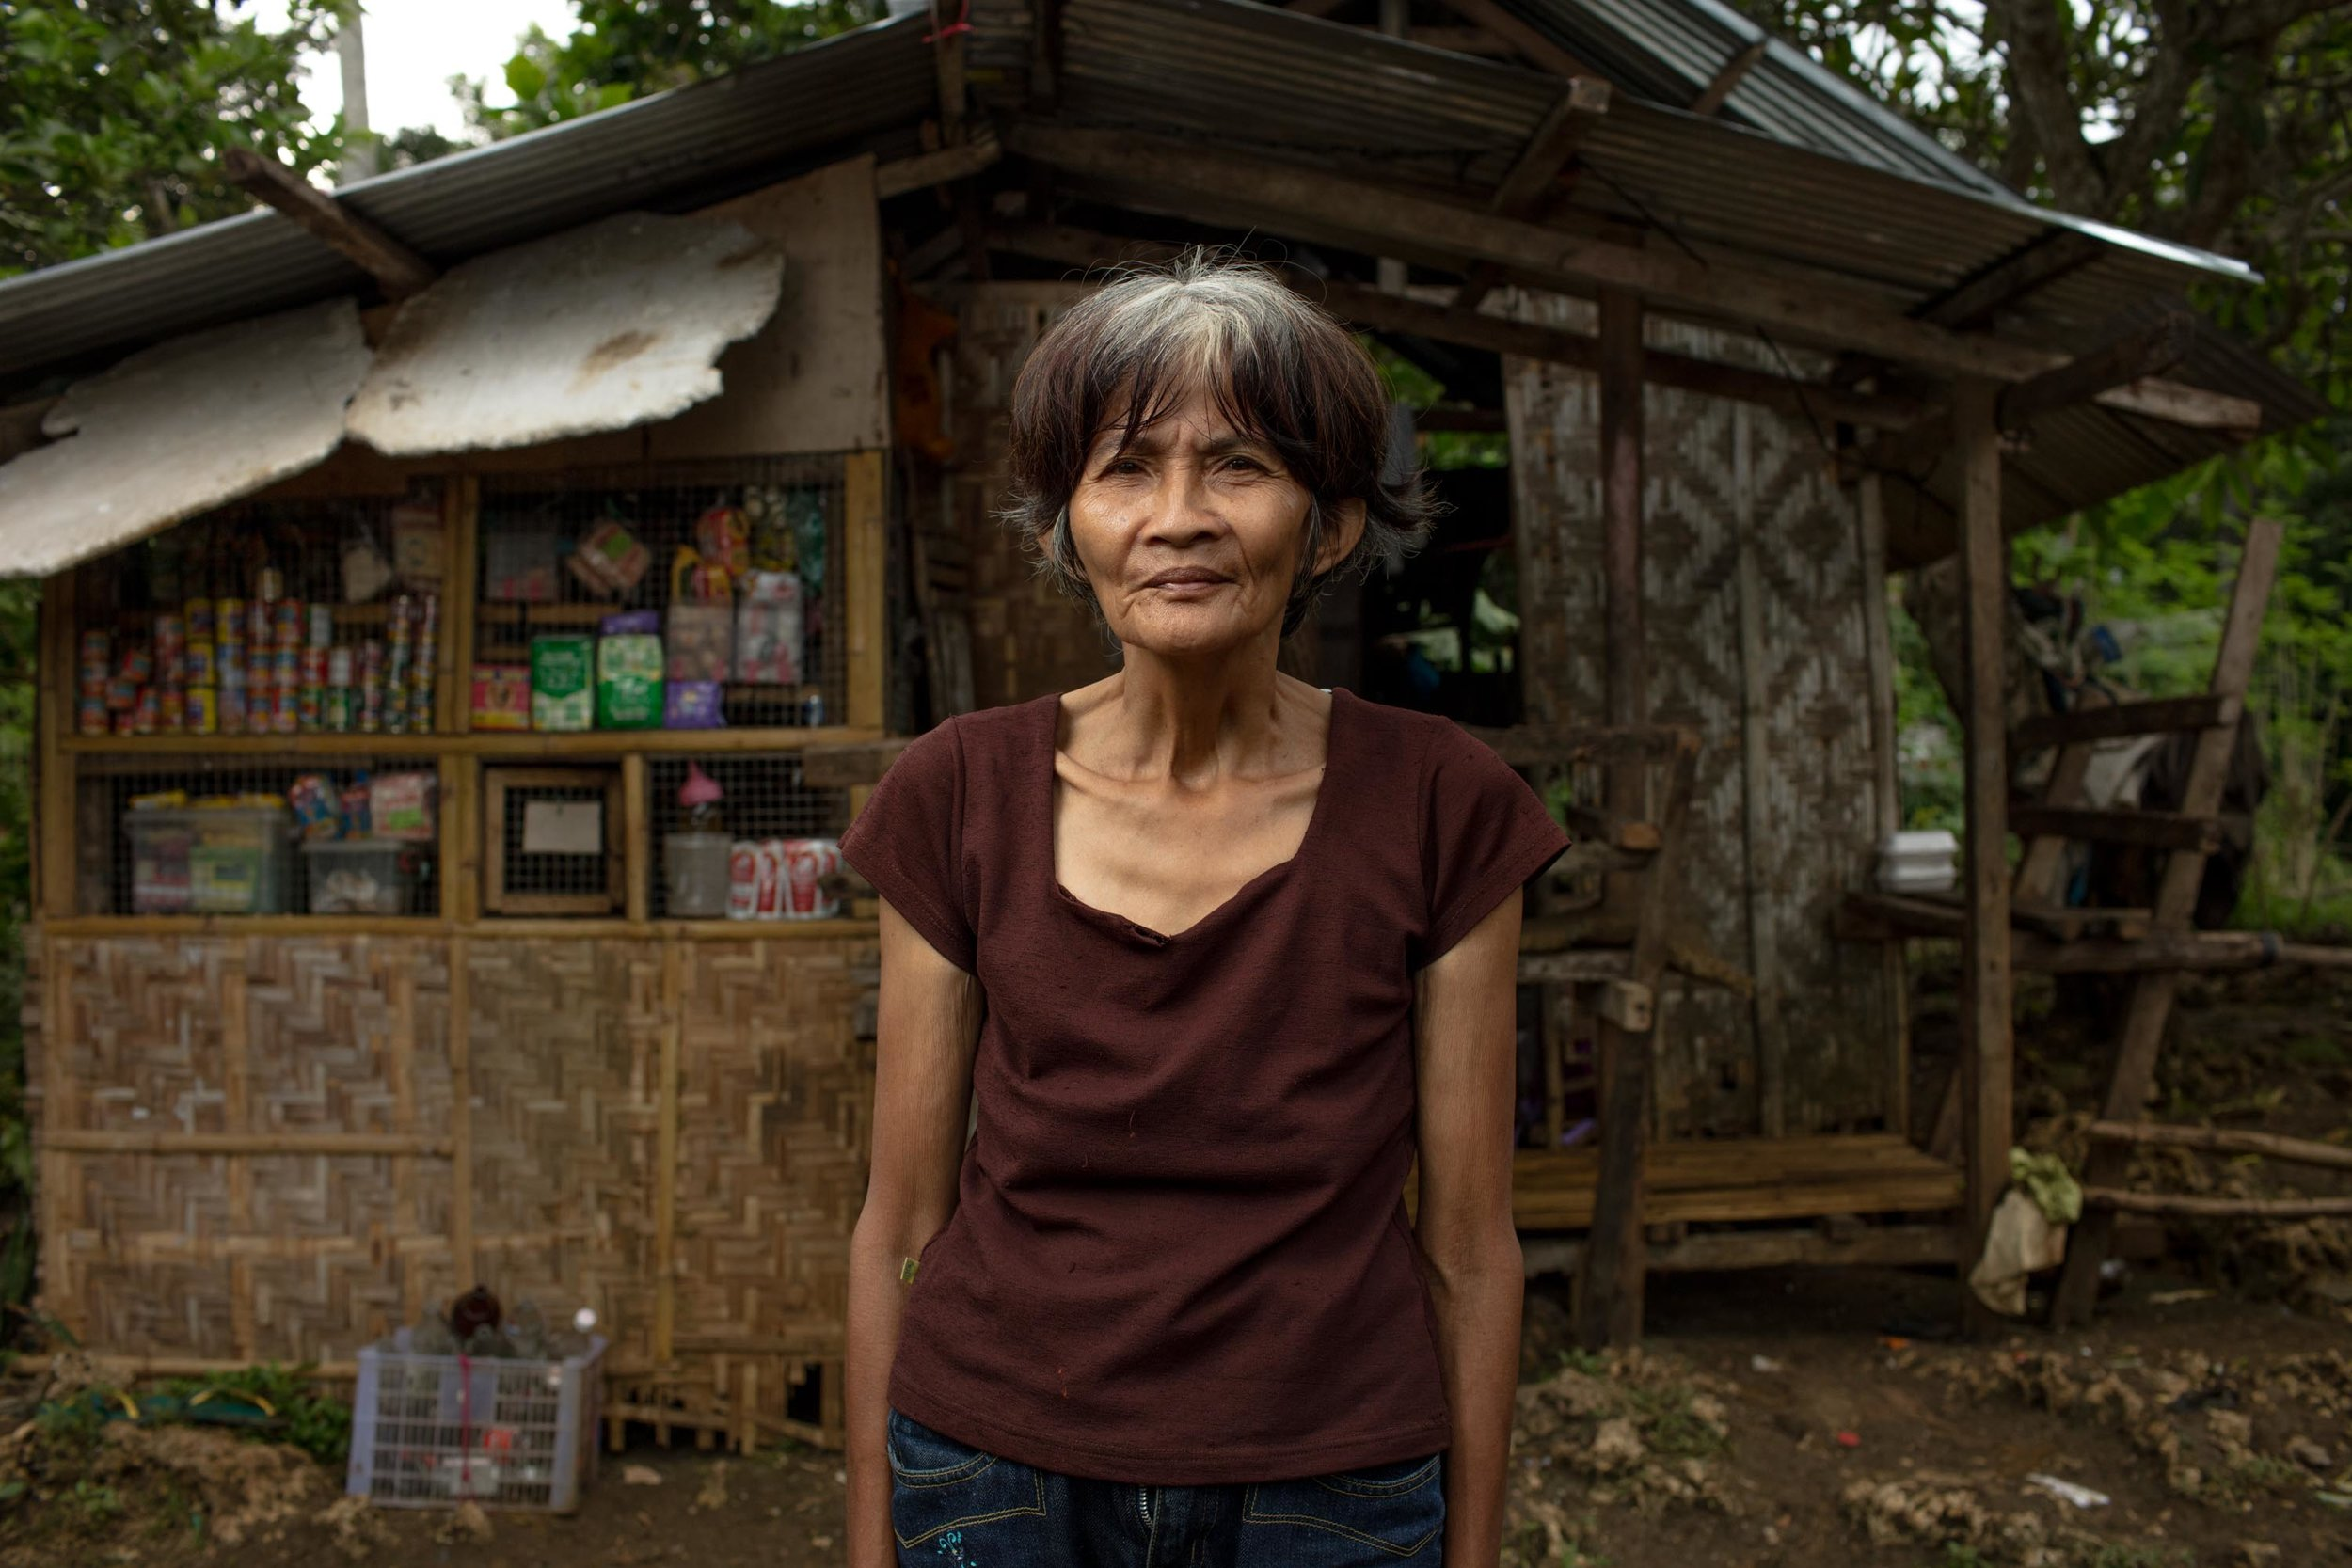 My name is Nieves and I am 62 years old. I collect Kangkong (leafy vegetables) and sell them on the sidewalk, so that I can buy rice to eat. Before that I sold pineapples. Due to poverty, I wasn't able to send my children to school. One of my married Daughters is staying with us at the moment so there are 6 of us living in my small bamboo hut. My Daughters Husband drives a motor cab but usually only makes 100-200 pesos a day ($3-$5). I have lived in this squatter's community for over 12 years, ever since we noticed the owner of the land never visiting. We are really struggling with poverty and don't even have lights or running water. We can't connect water or power because the land isn't ours and we cannot afford to rent a house somewhere. We just wait and hope that one day someone can solve our problem. I've had a cough for one month straight and I hope its not Tuberculosis. I wish that God gives me a long life because I want to see my children and my grand children improve their situation and be happy. I would love for us to be able to eat three times a day.